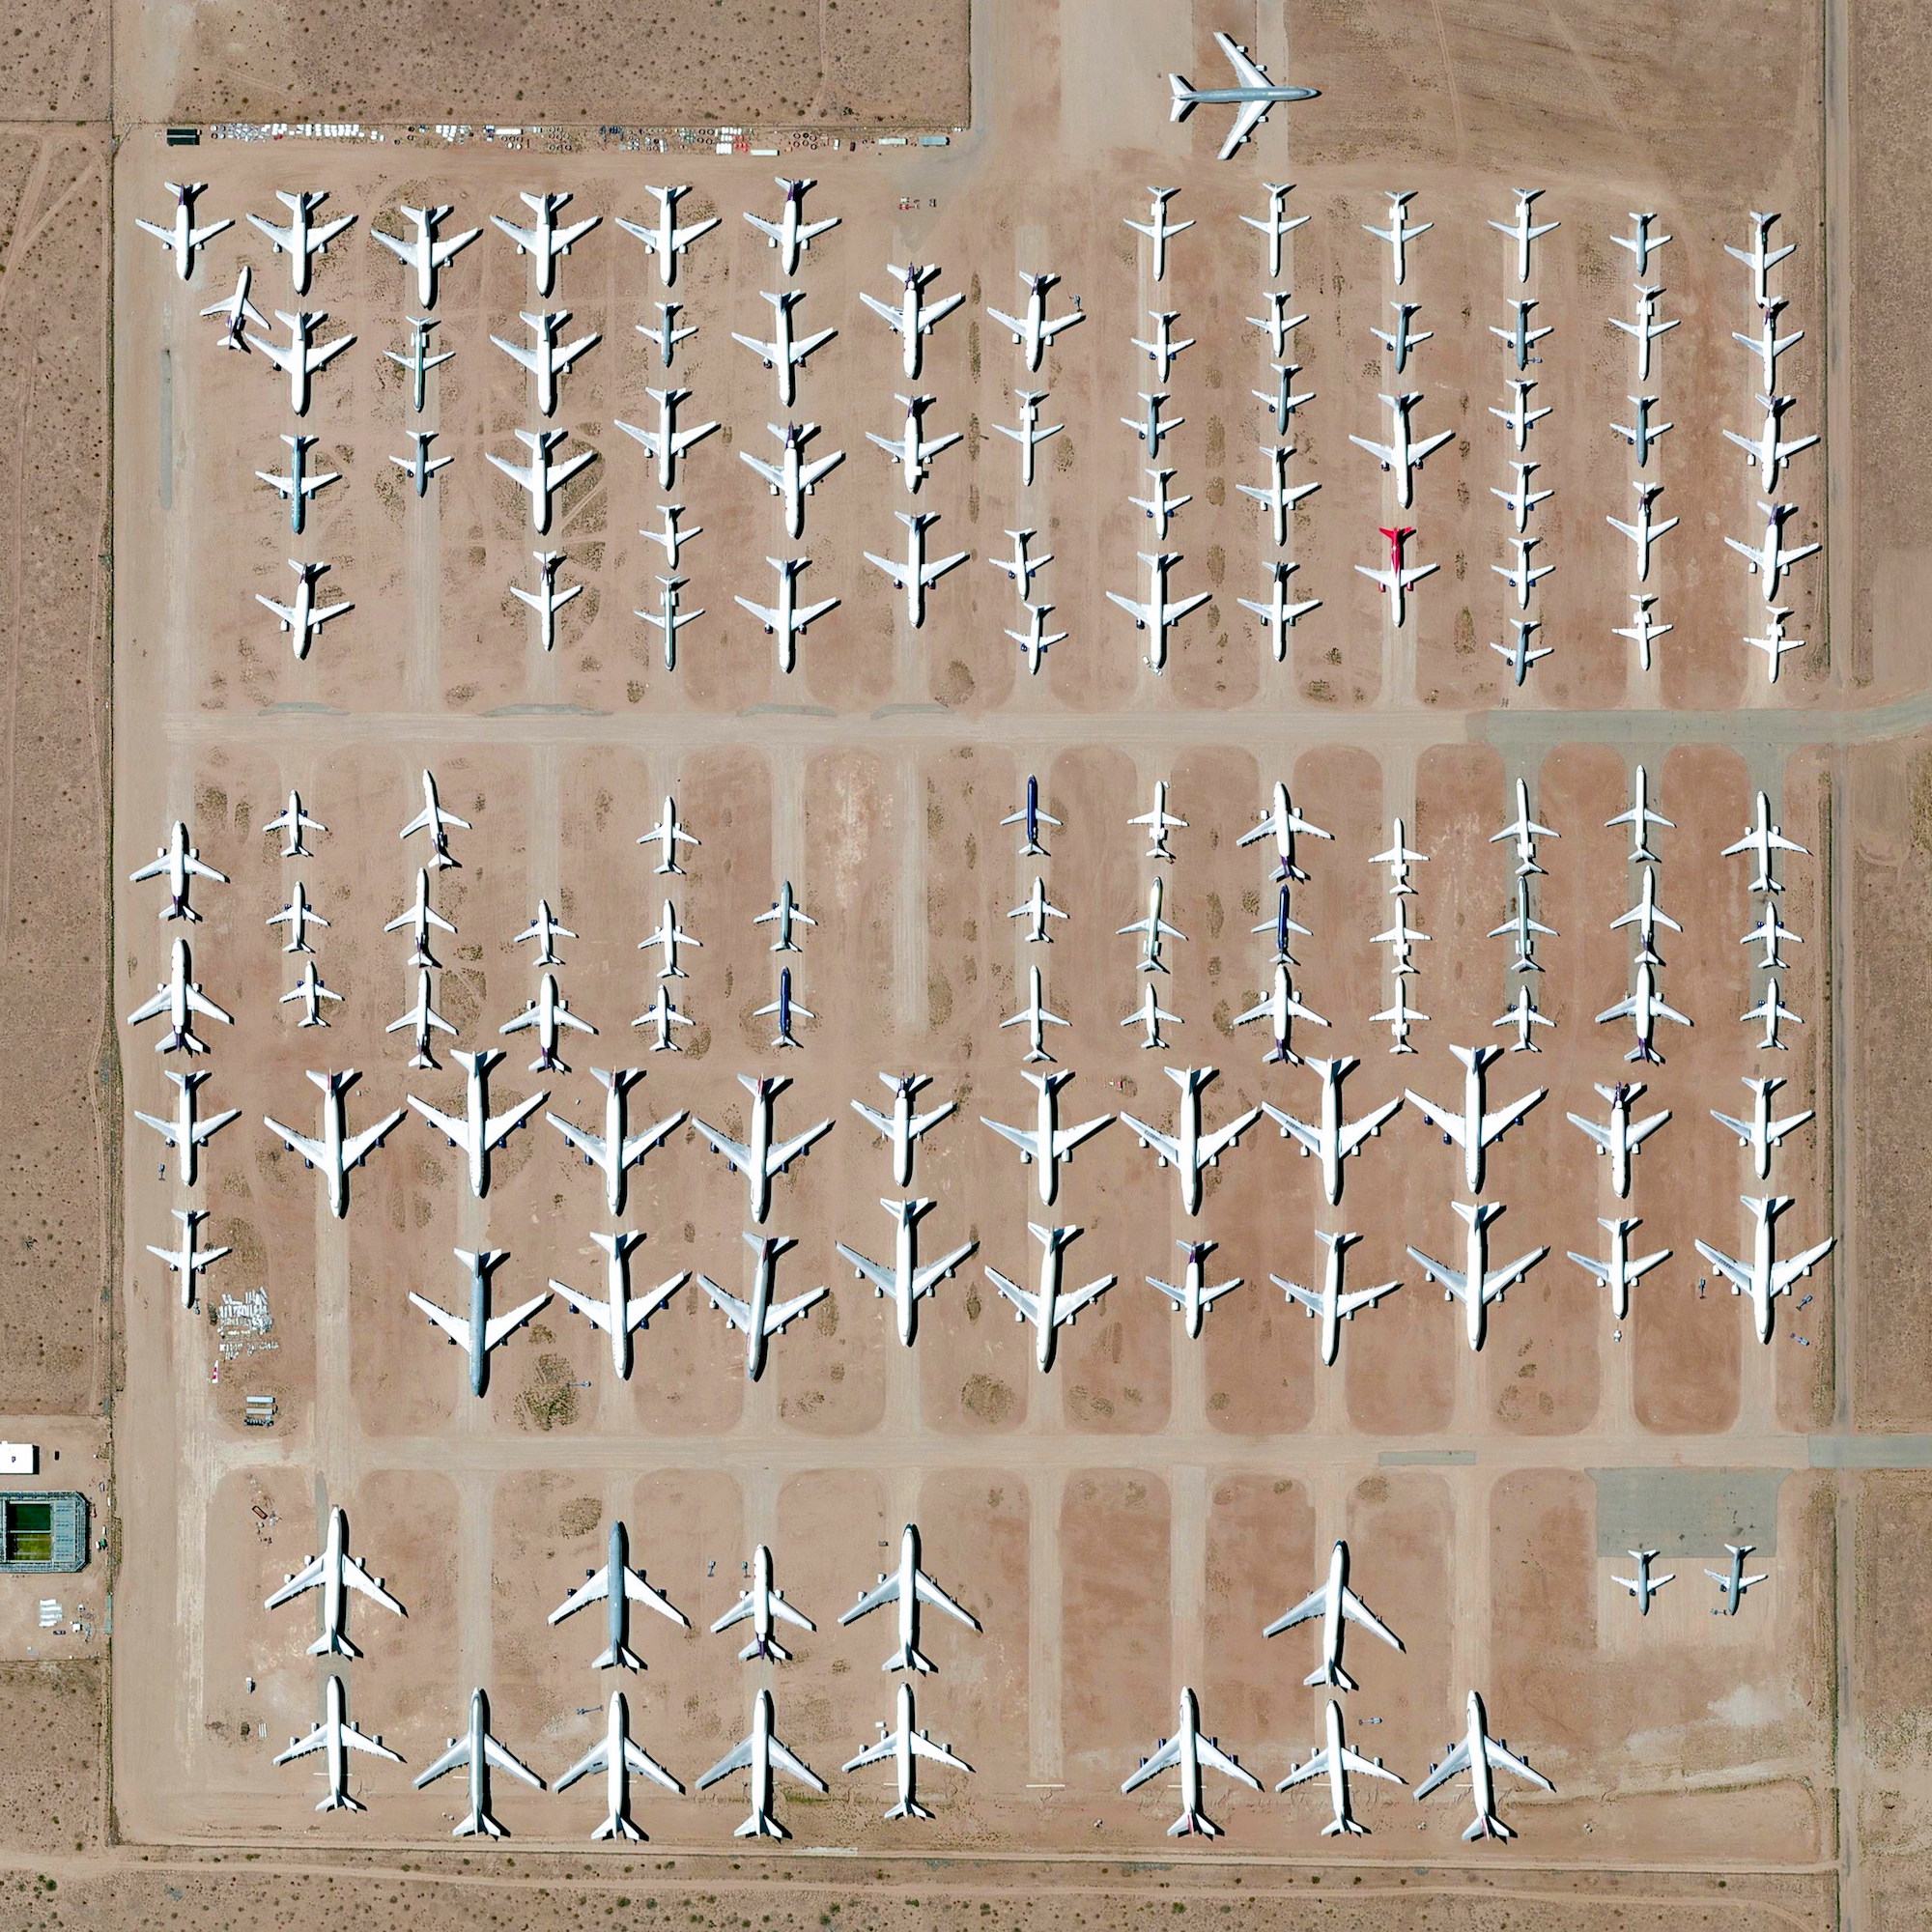 """10/19/2016  Southern California Logistics Airport  Victorville, California, USA  34°35′51″N 117°22′59″W    Here's one of my favorite images from the Where We Waste chapter of """"Overview"""". The Southern California Logistics Airport in Victorville, California contains an aircraft boneyard with more than 150 retired planes. Because the demand for jumbo jets has dropped significantly in the last two decades in favor of smaller, more affordable twin‑engine planes, many large aircrafts such as Boeing 747s have been retired. The dry conditions in Victorville – located on the edge of the Mojave Desert – limits the corrosion of metal, meaning planes can be stored here for years while they are stripped for spare parts."""